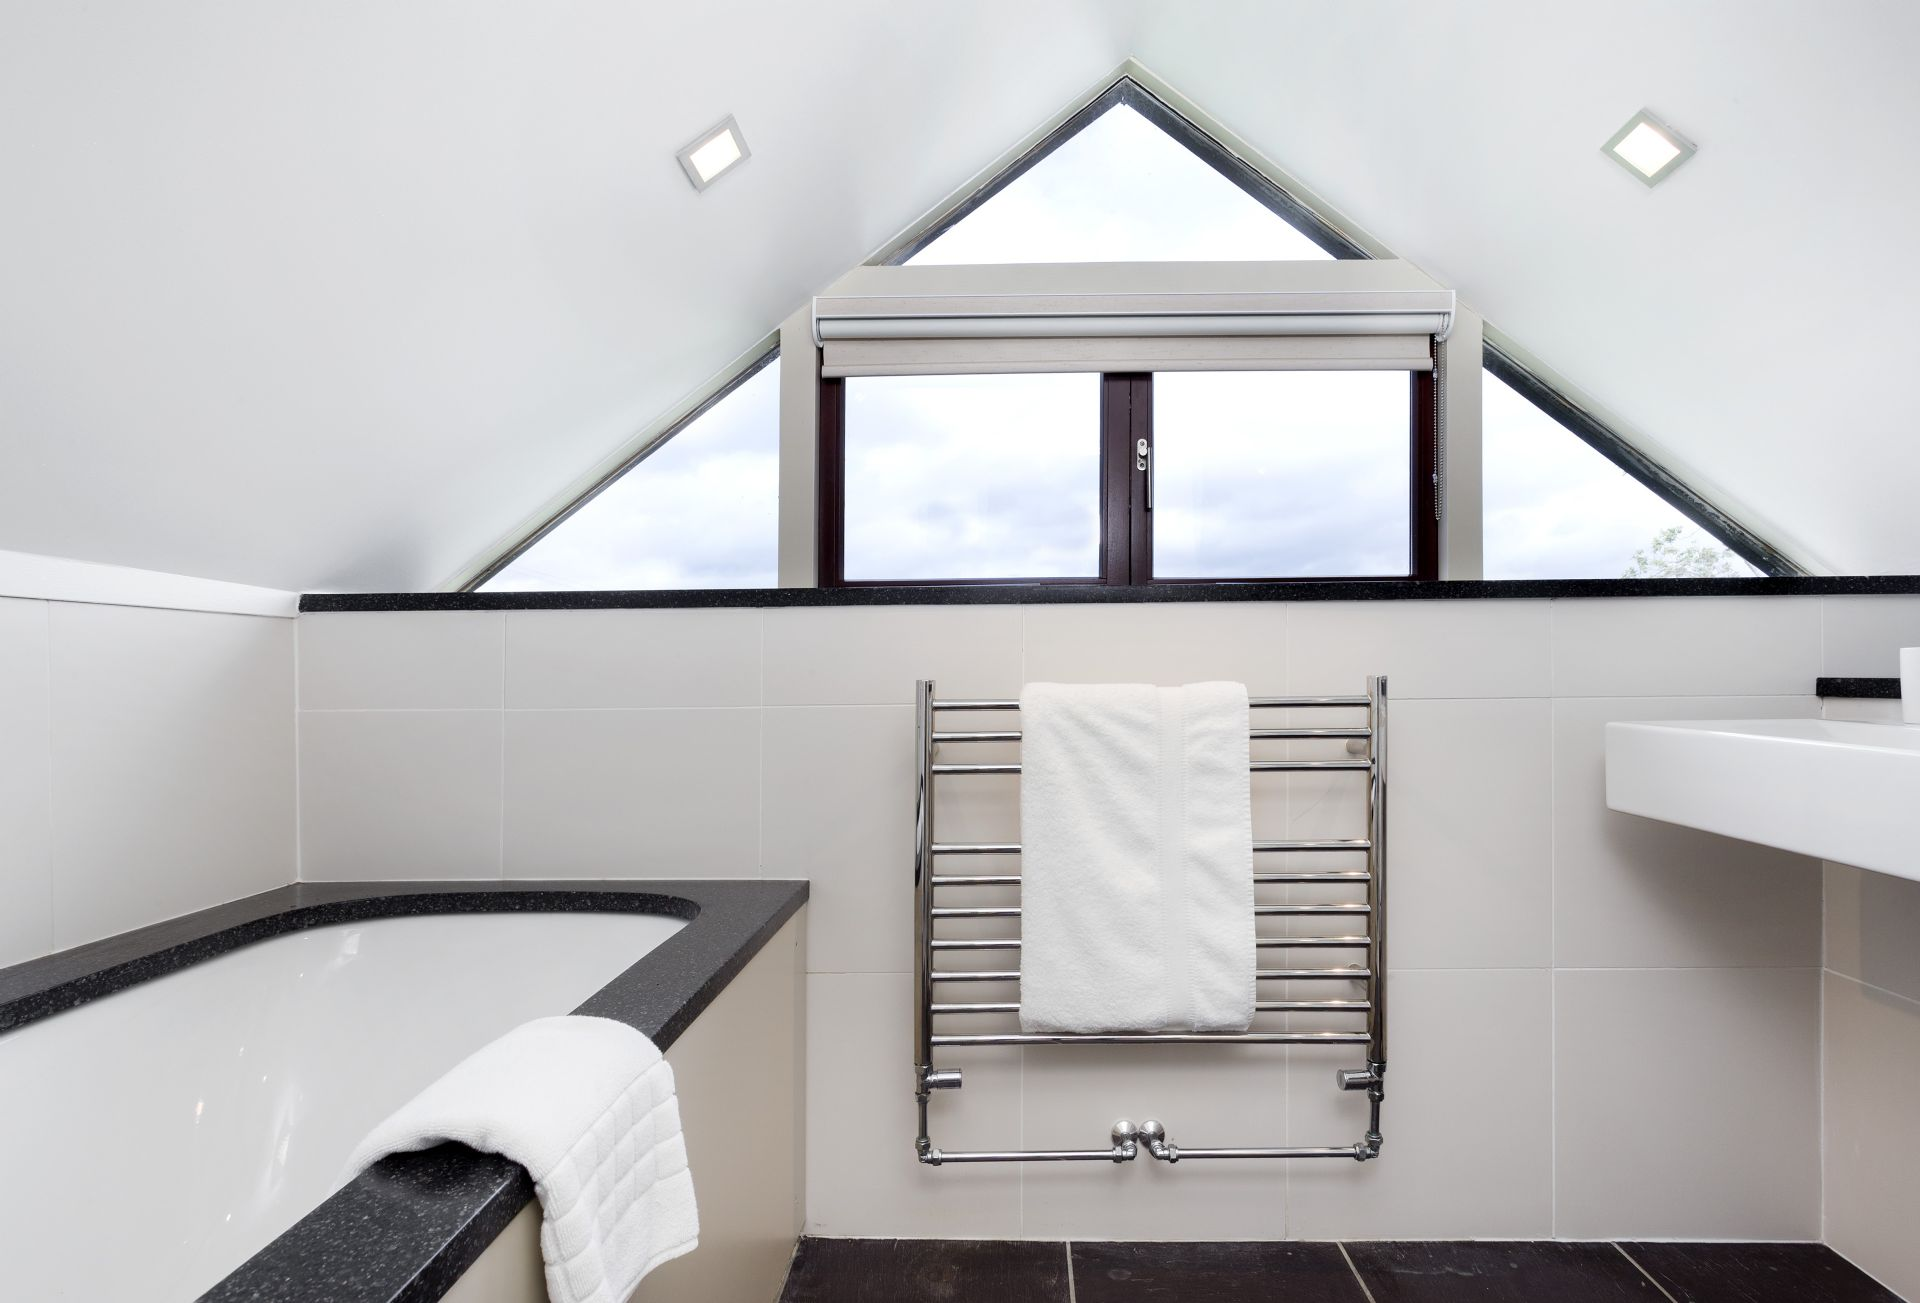 First floor: Unique design in the bathroom with unusual windows in the rooftop